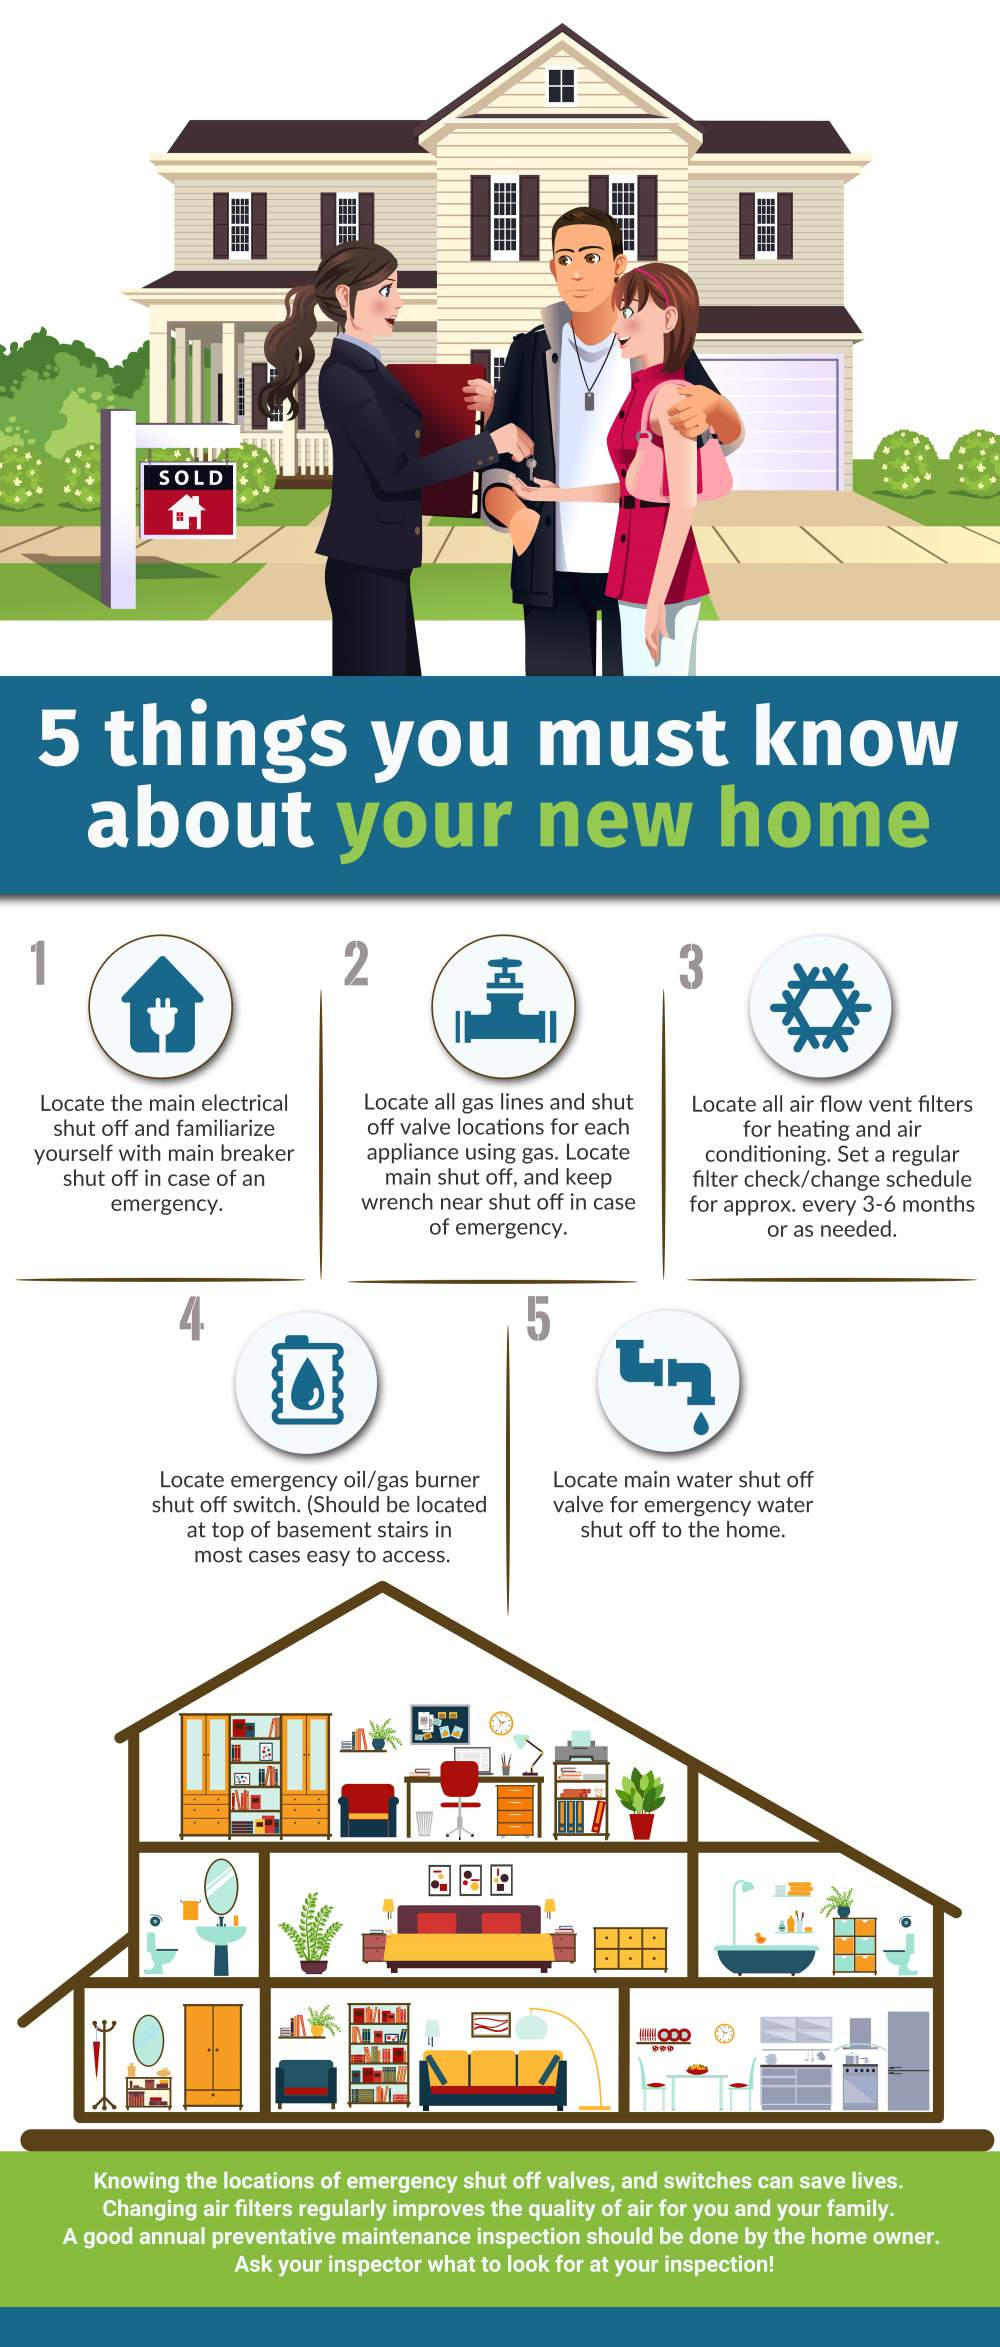 Know About Your New Home